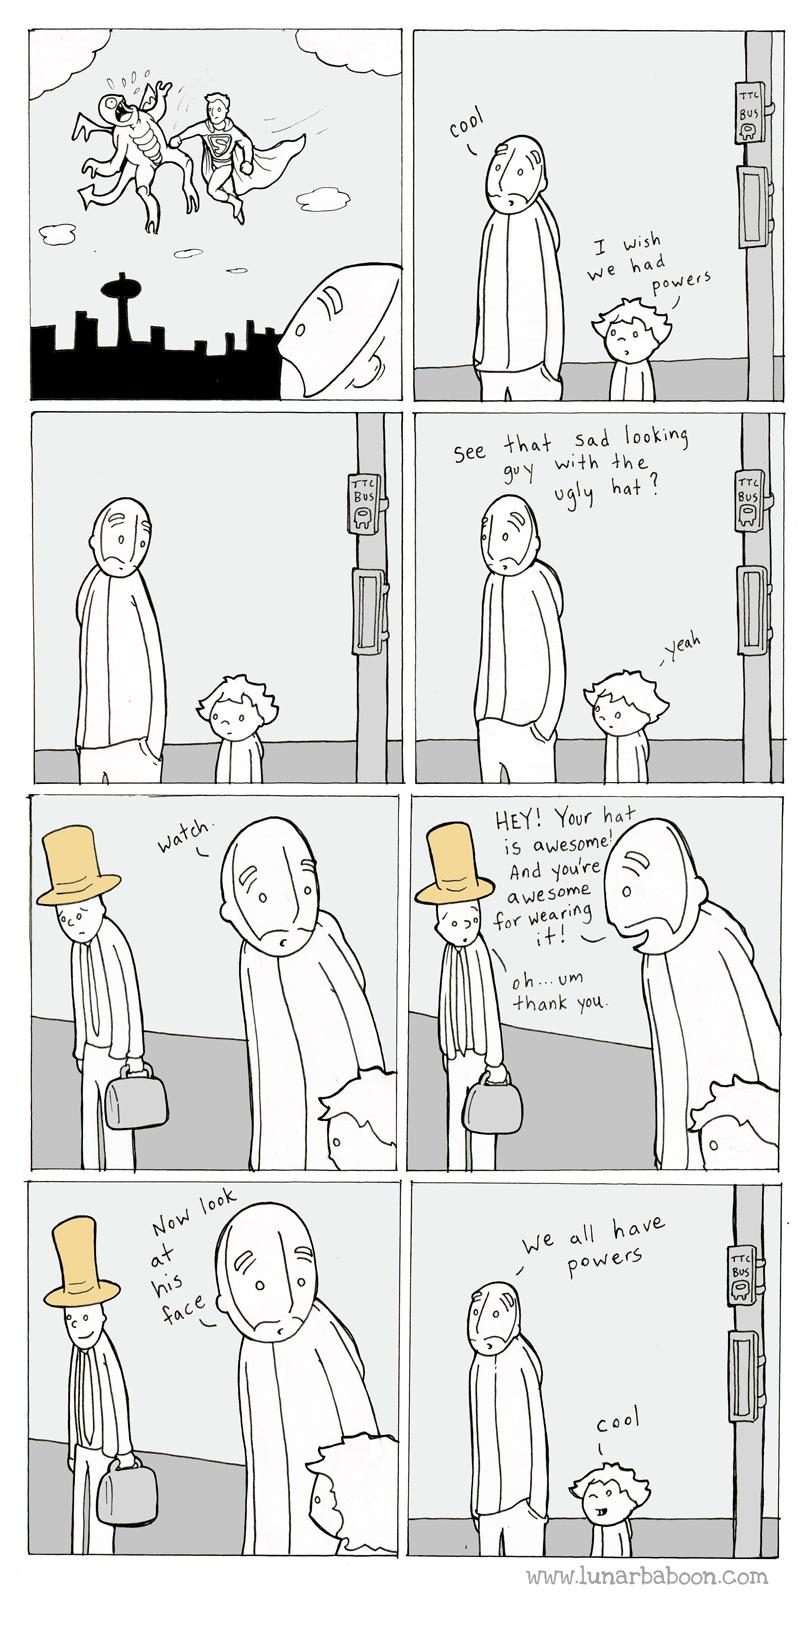 [Image] We All Have Powers